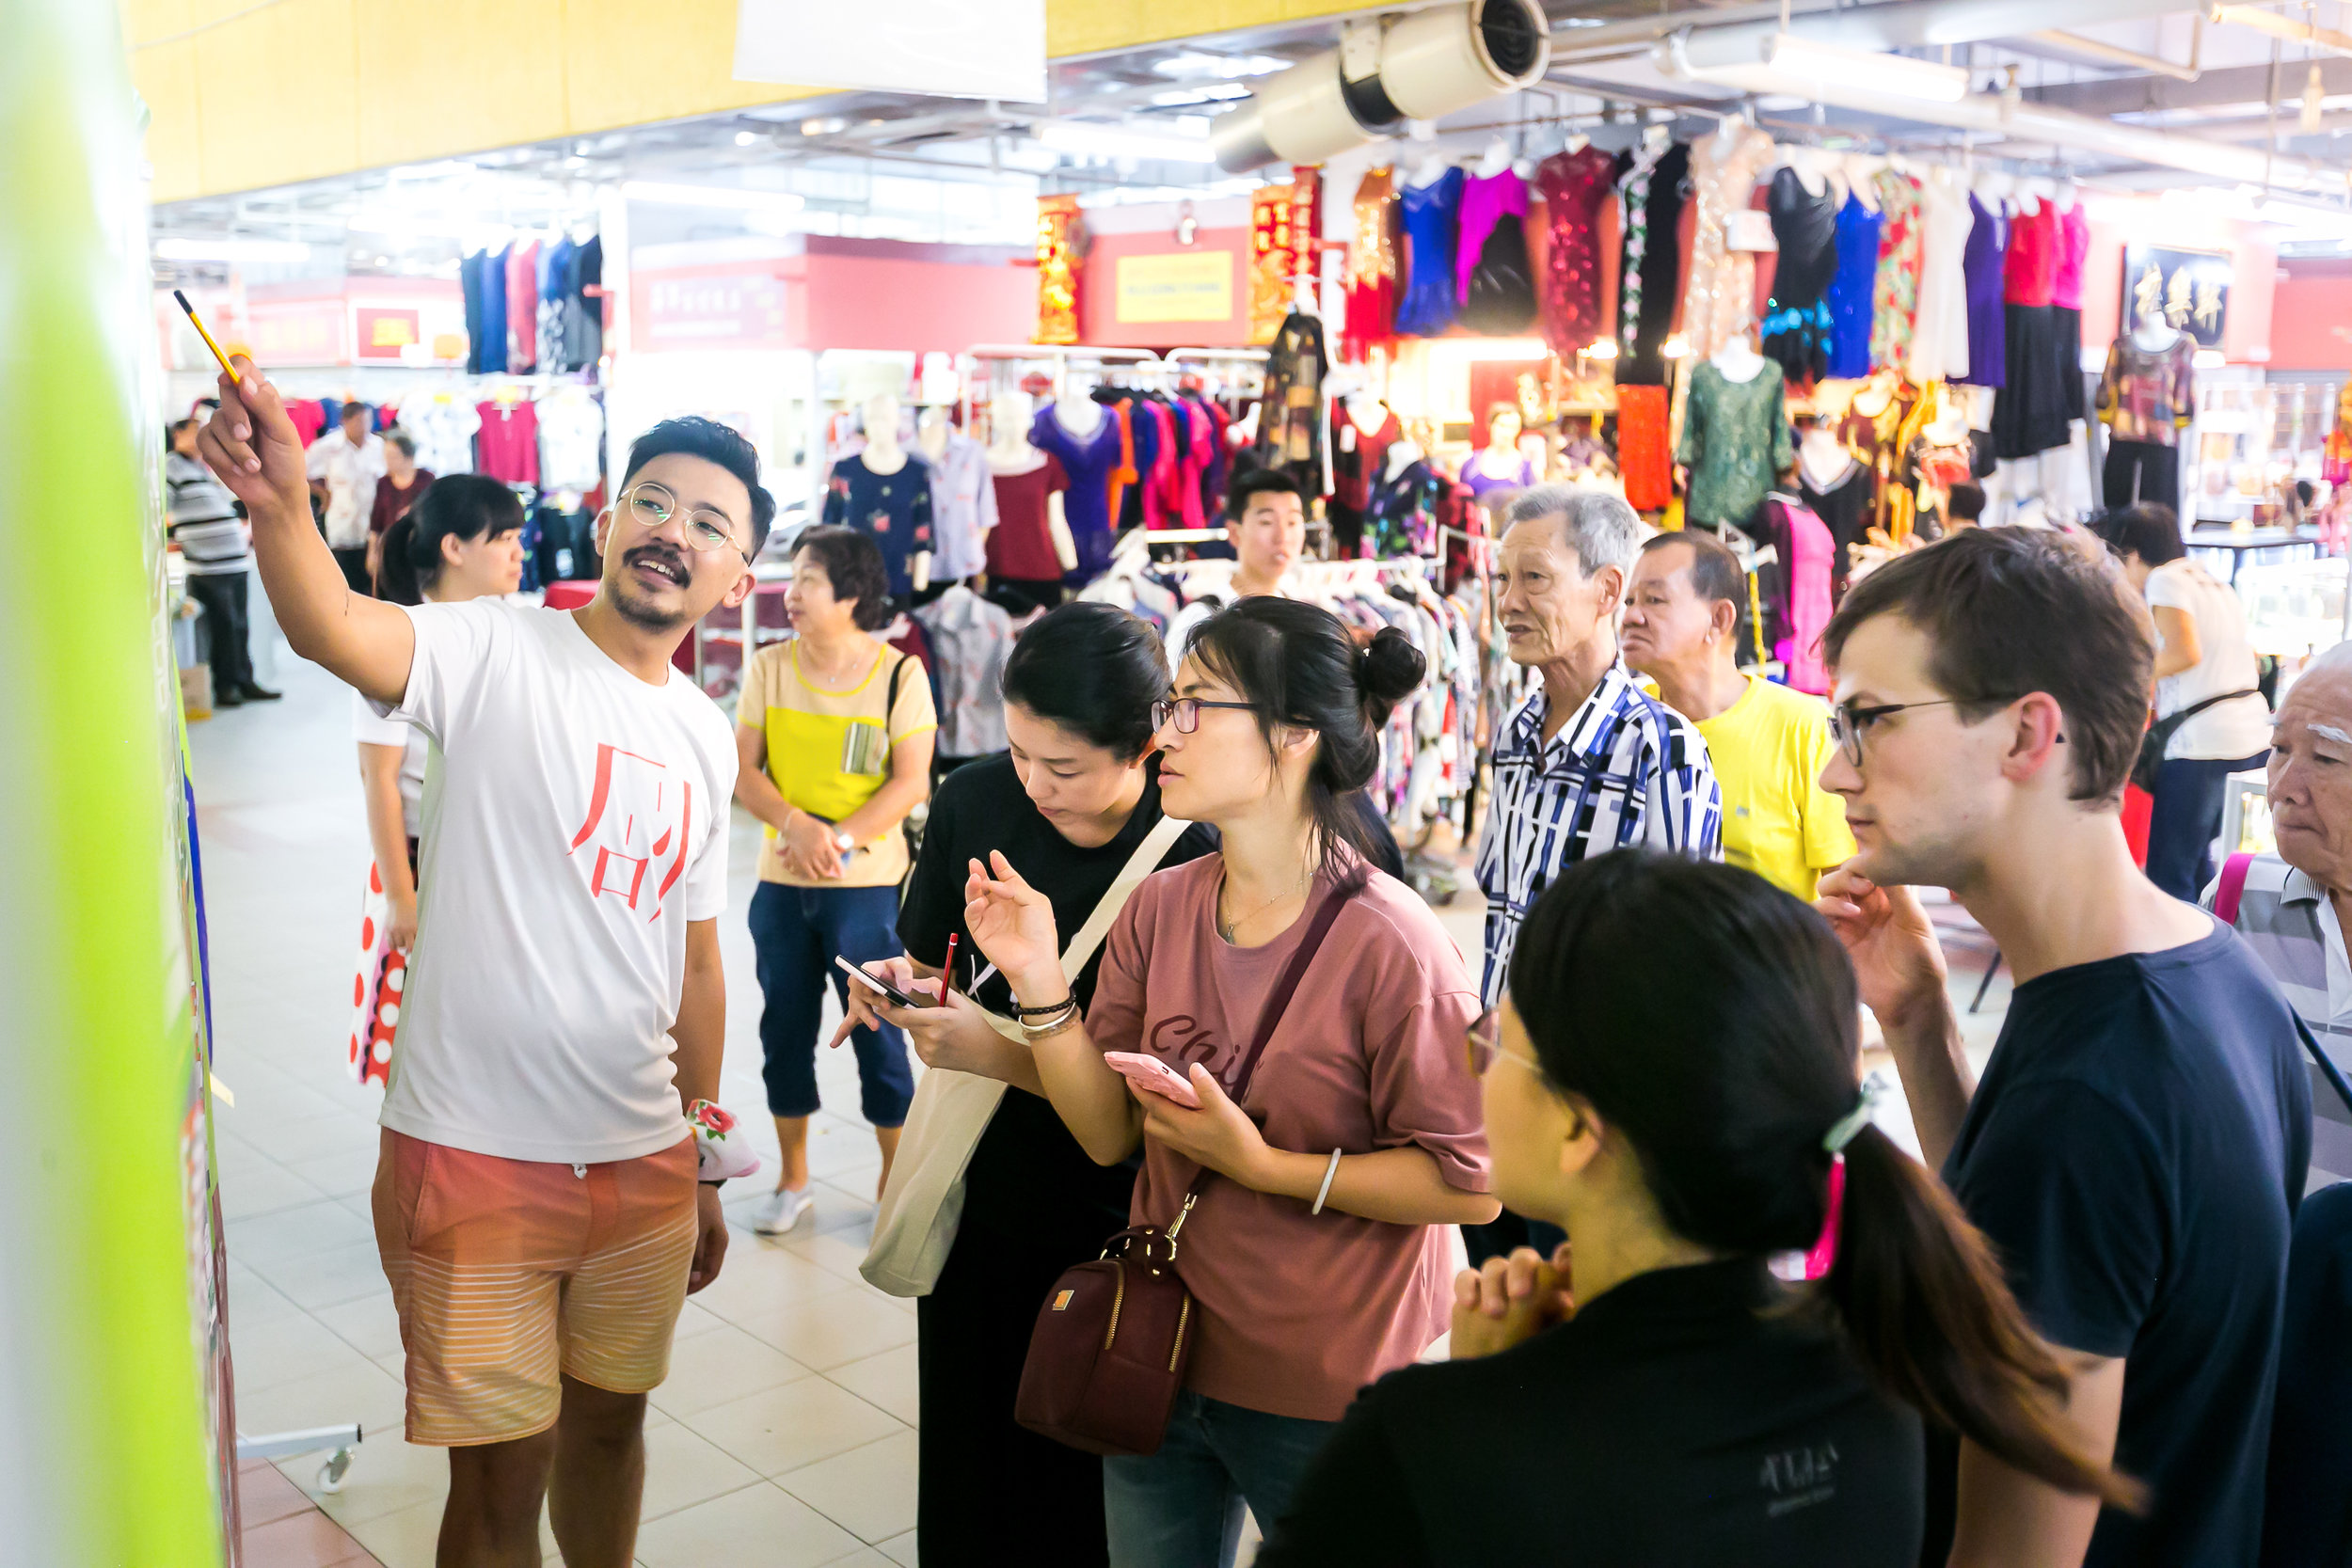 Passerbys sharing their insights on Chinatown during our public engagement activity